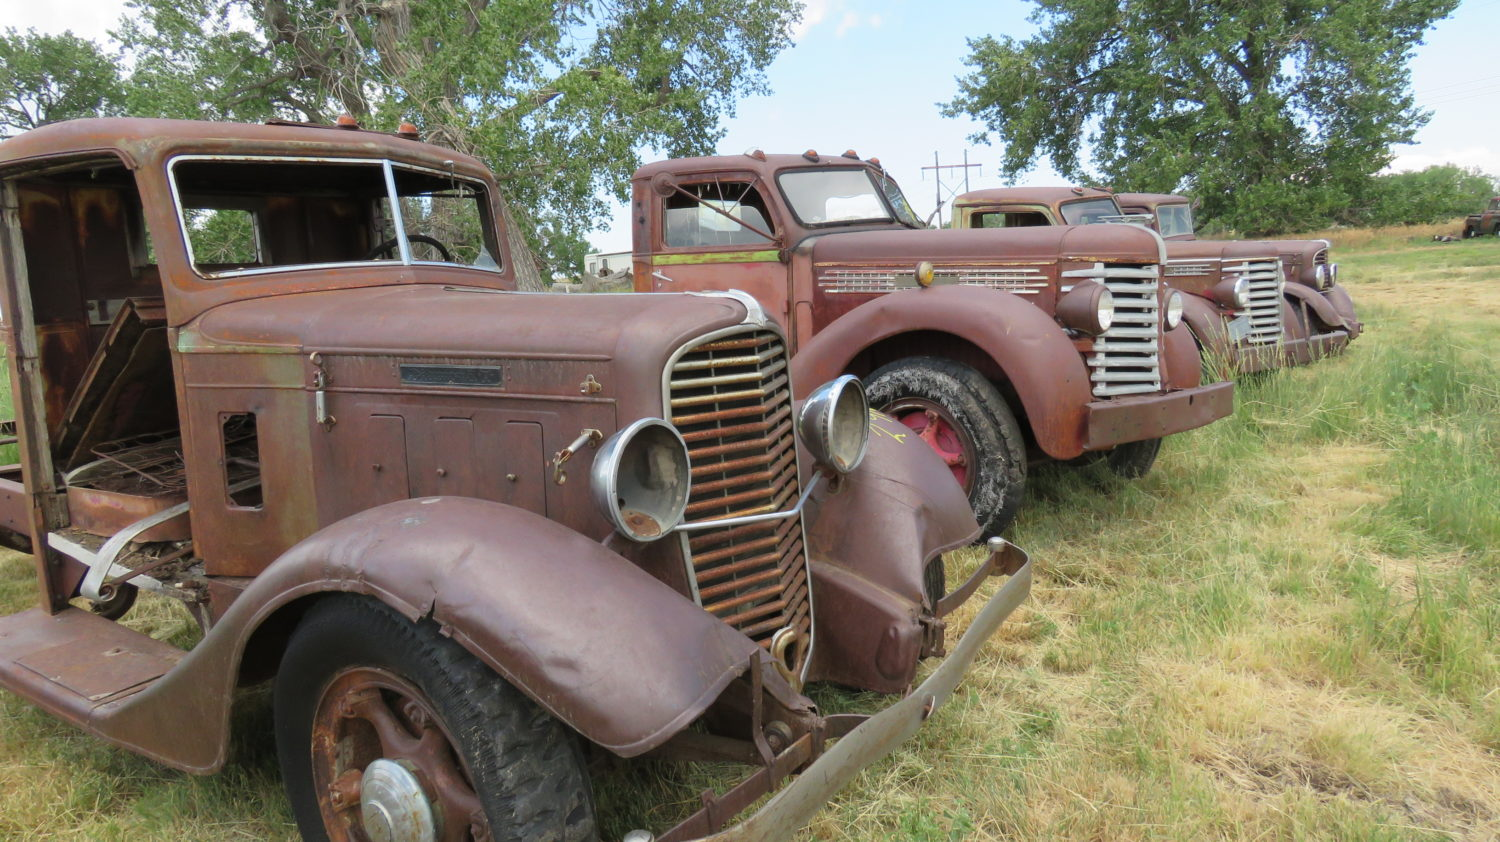 Appox 200 collector cars & trucks! The Eich & Friends Collection Auction - image 10